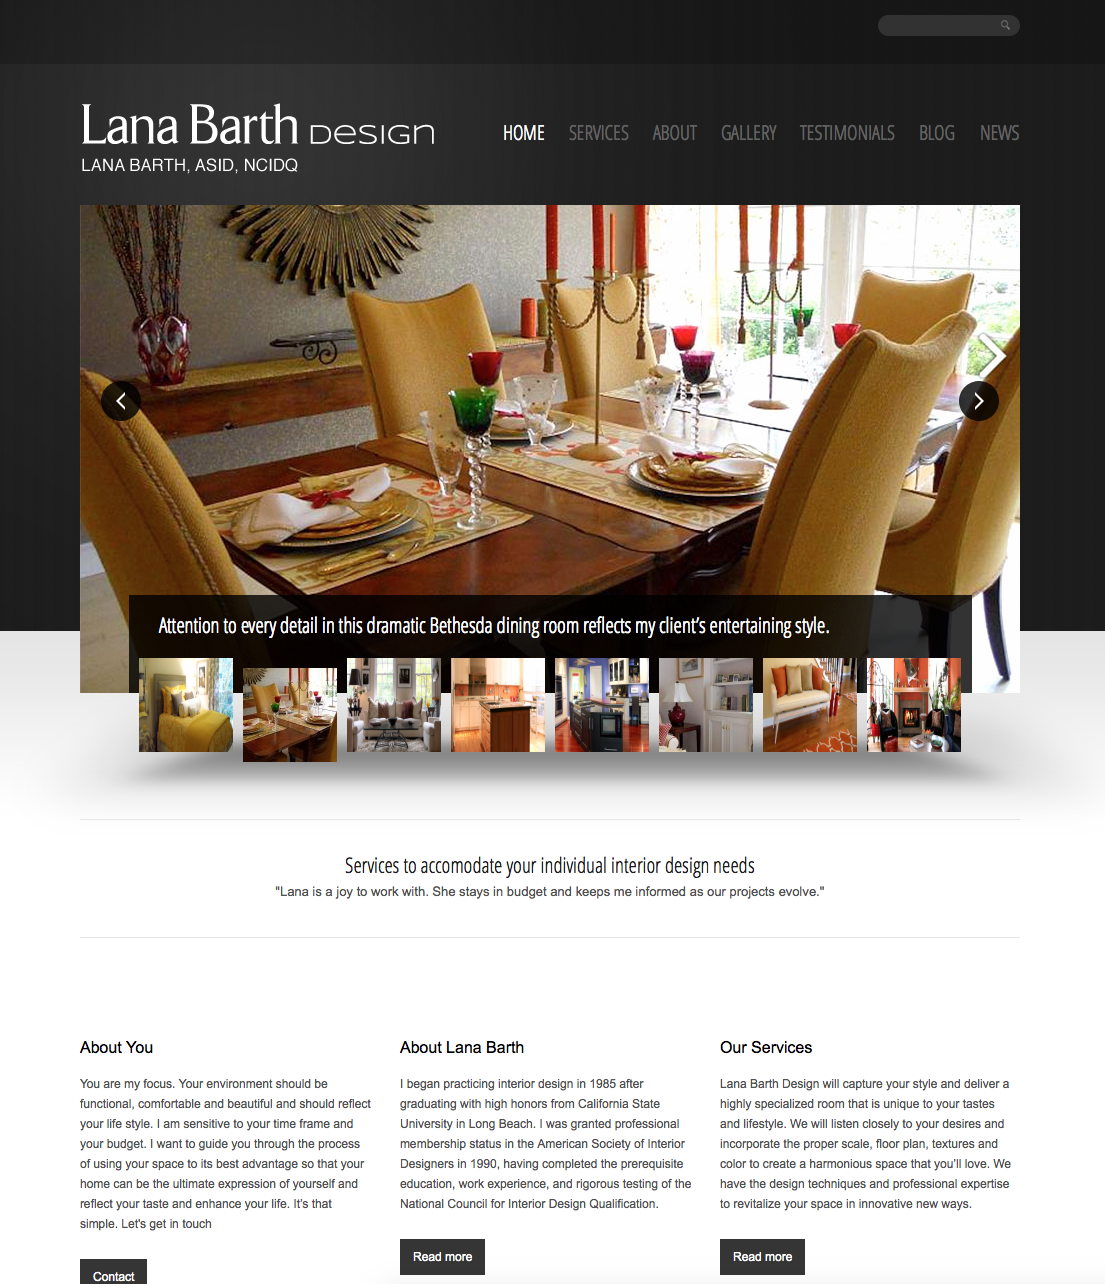 Lana Barth Design Website